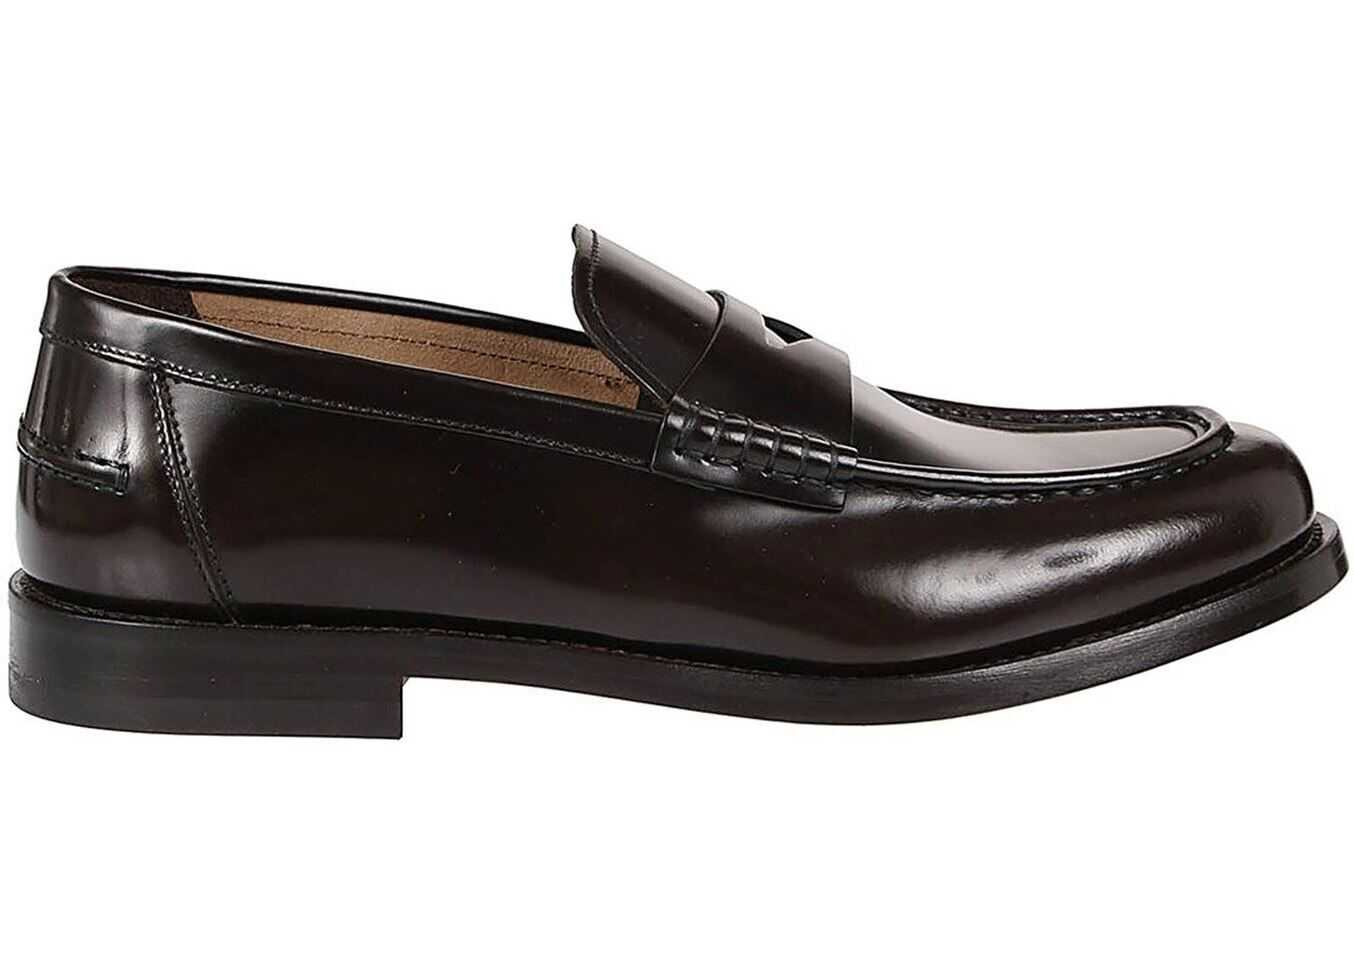 Doucal's Classic Brushed Leather Loafers DU2854GRANUY007TM02 Brown imagine b-mall.ro